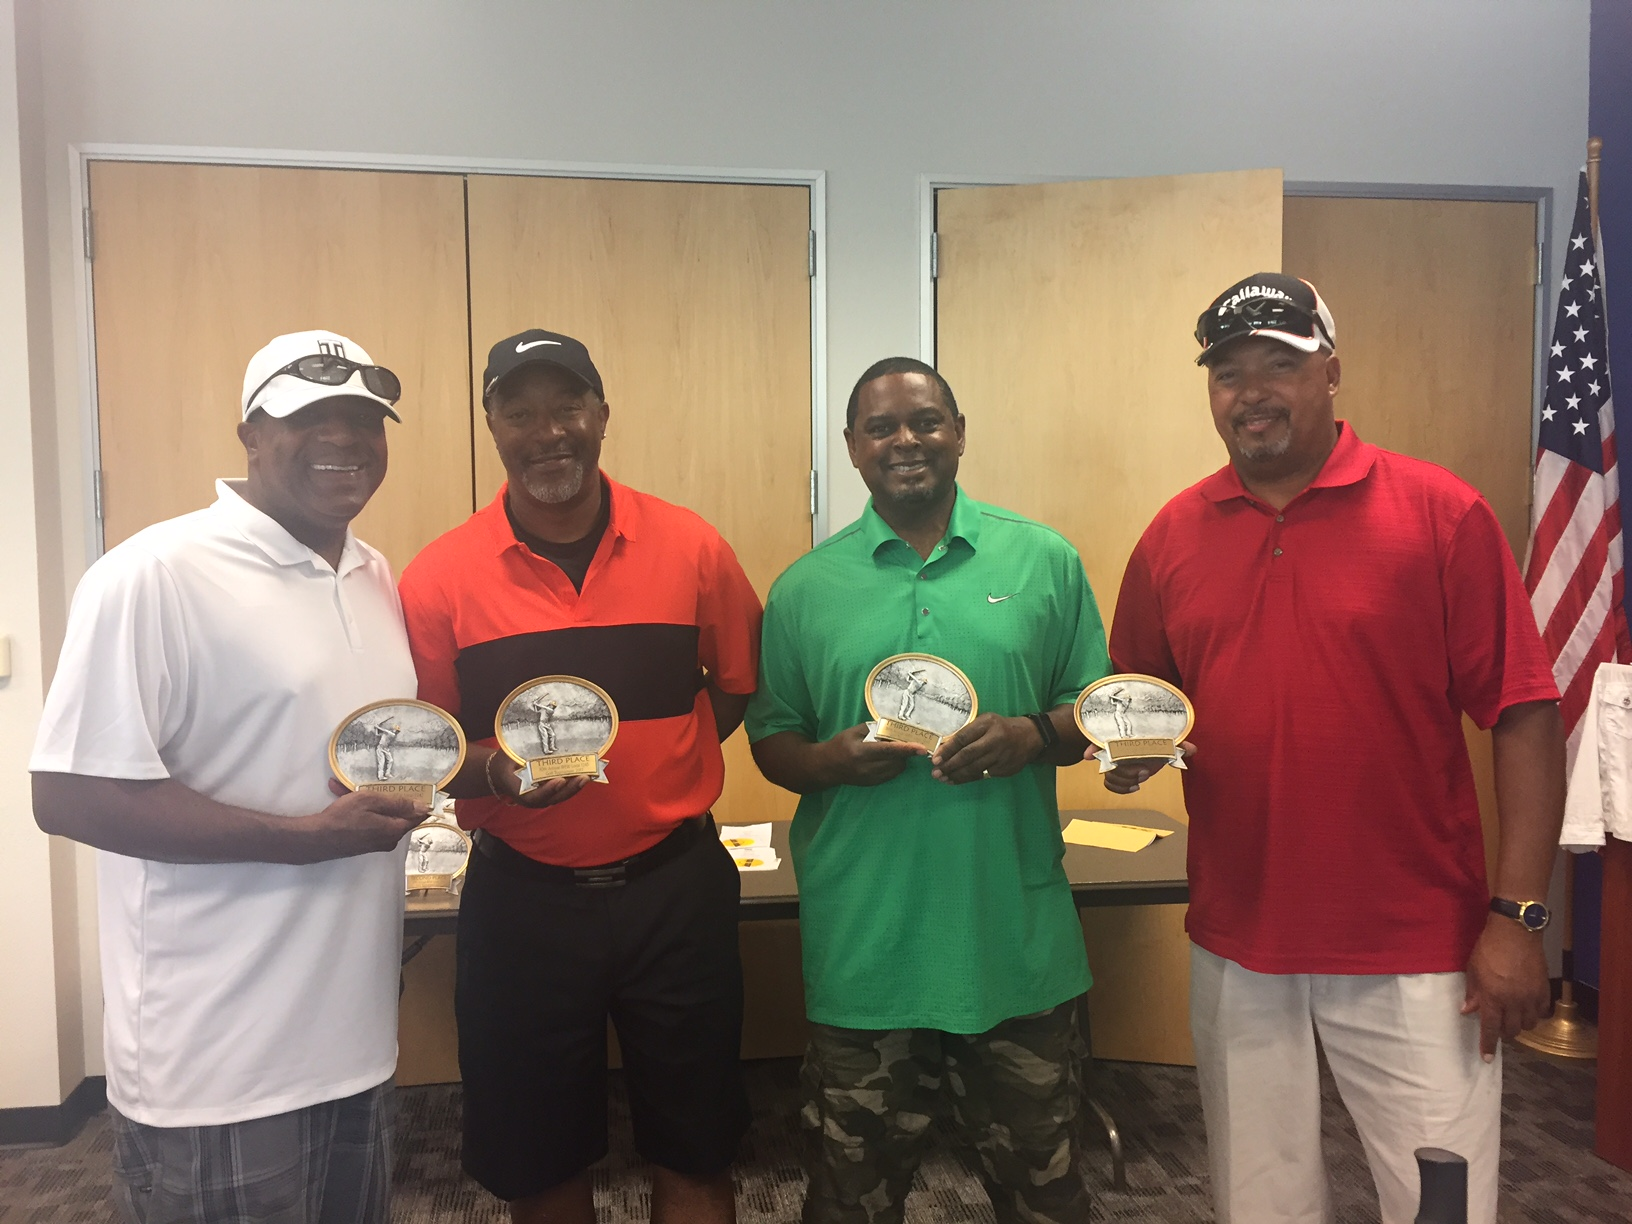 3rd Place - Eric Wright, Ezzard Carney, Pernell Wilsott and Terry Carney